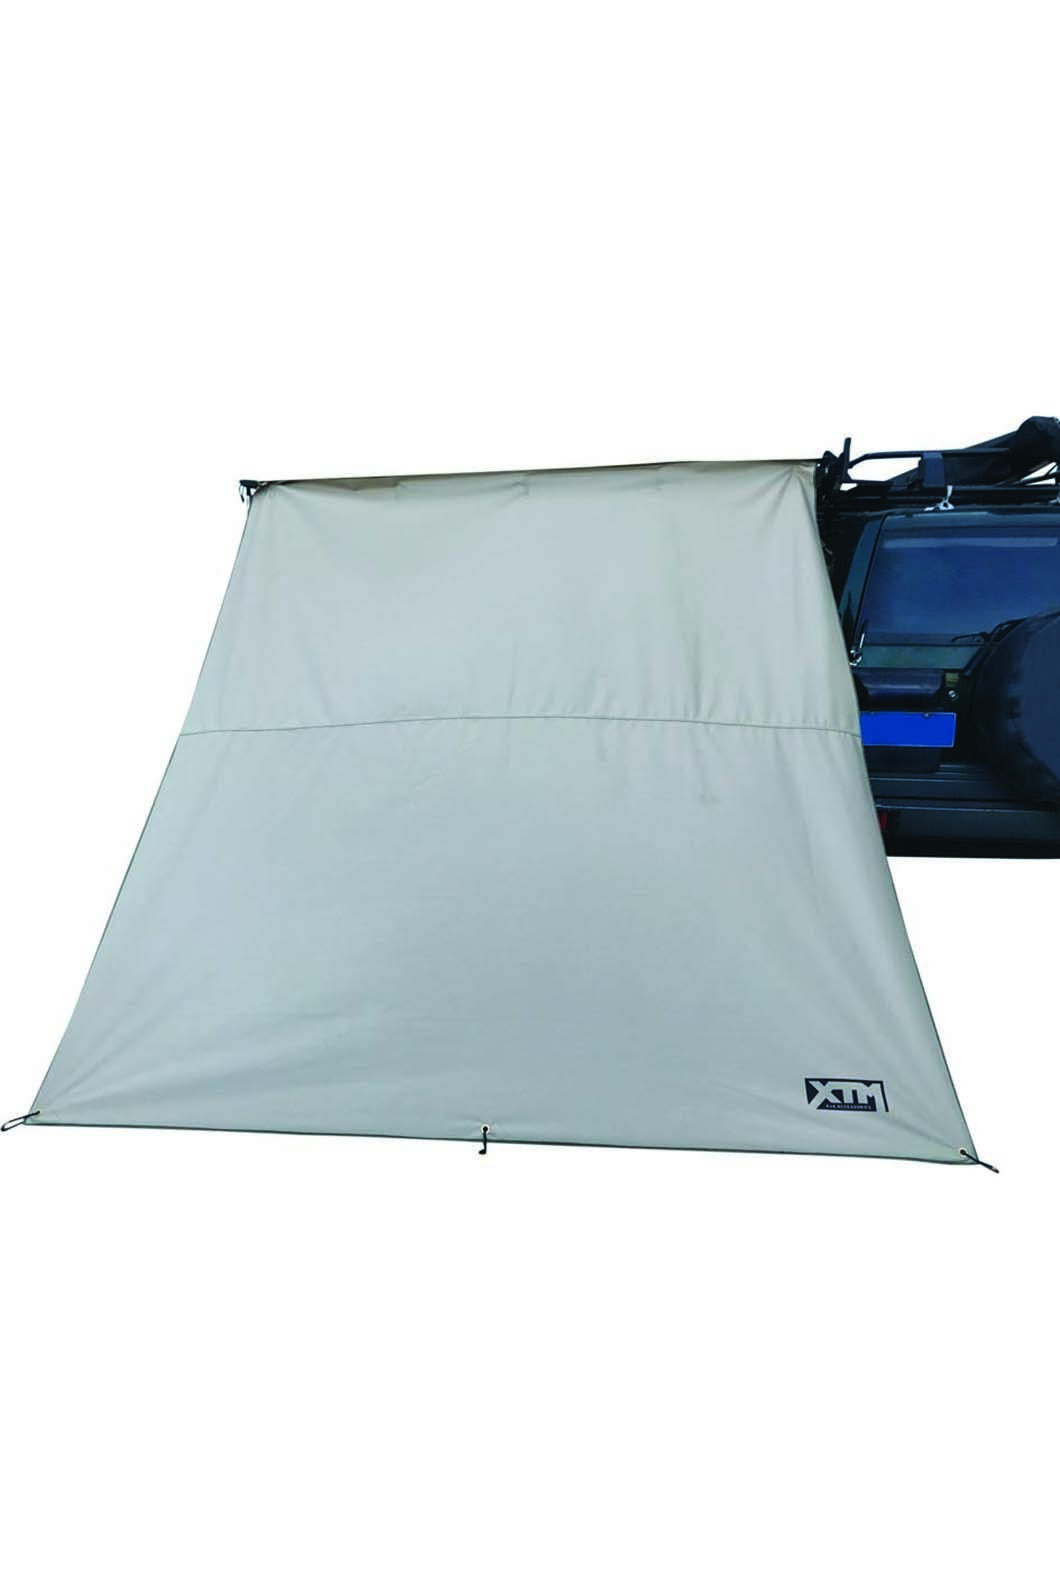 WANDERER 4X4 Car Awning Side Wall 2m, None, hi-res